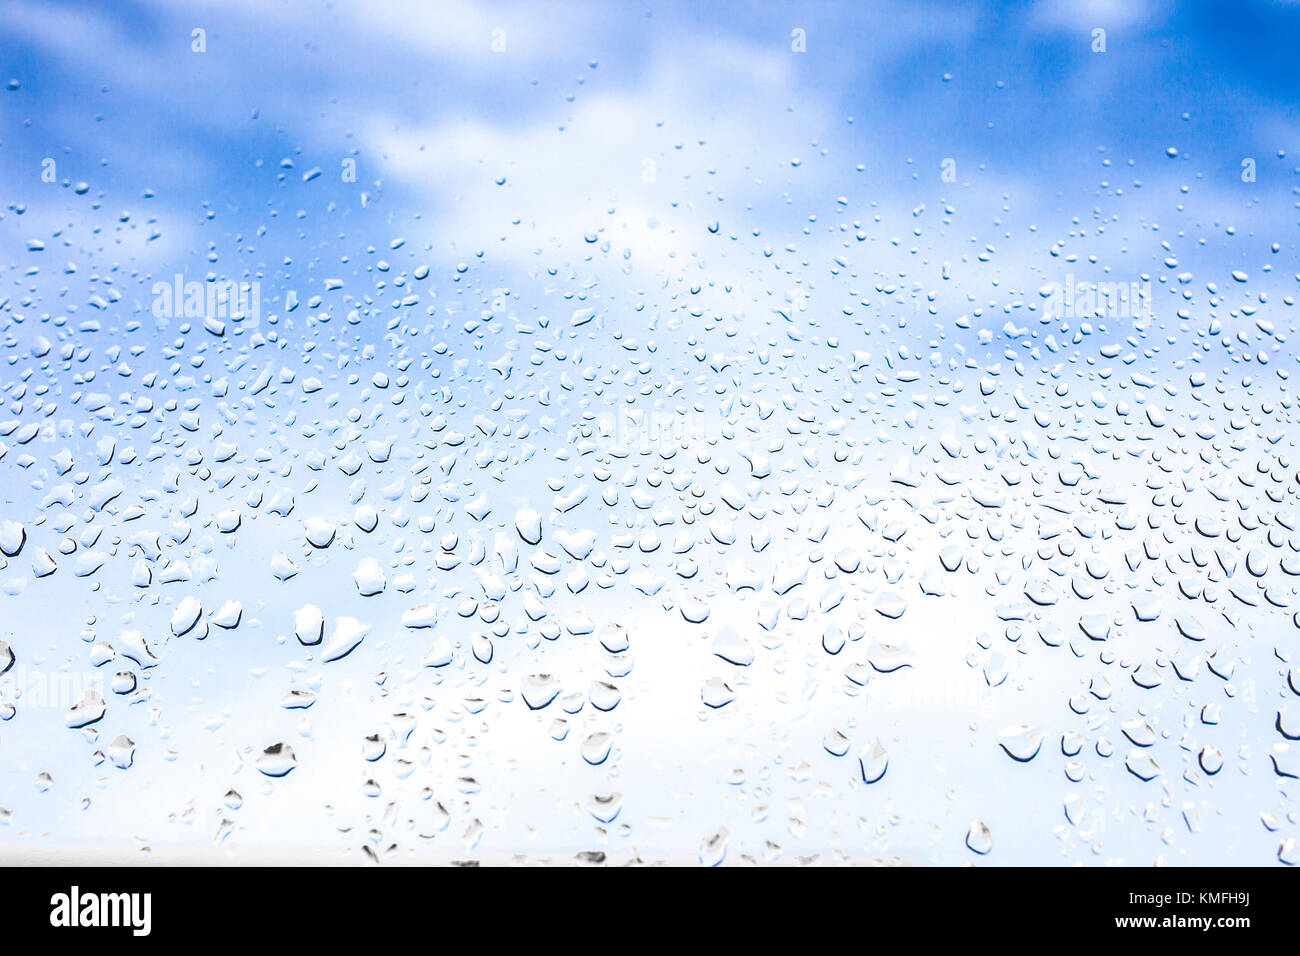 Rain drops on the glass in the background blurred blue cloudy sky. After raining concept - Stock Image